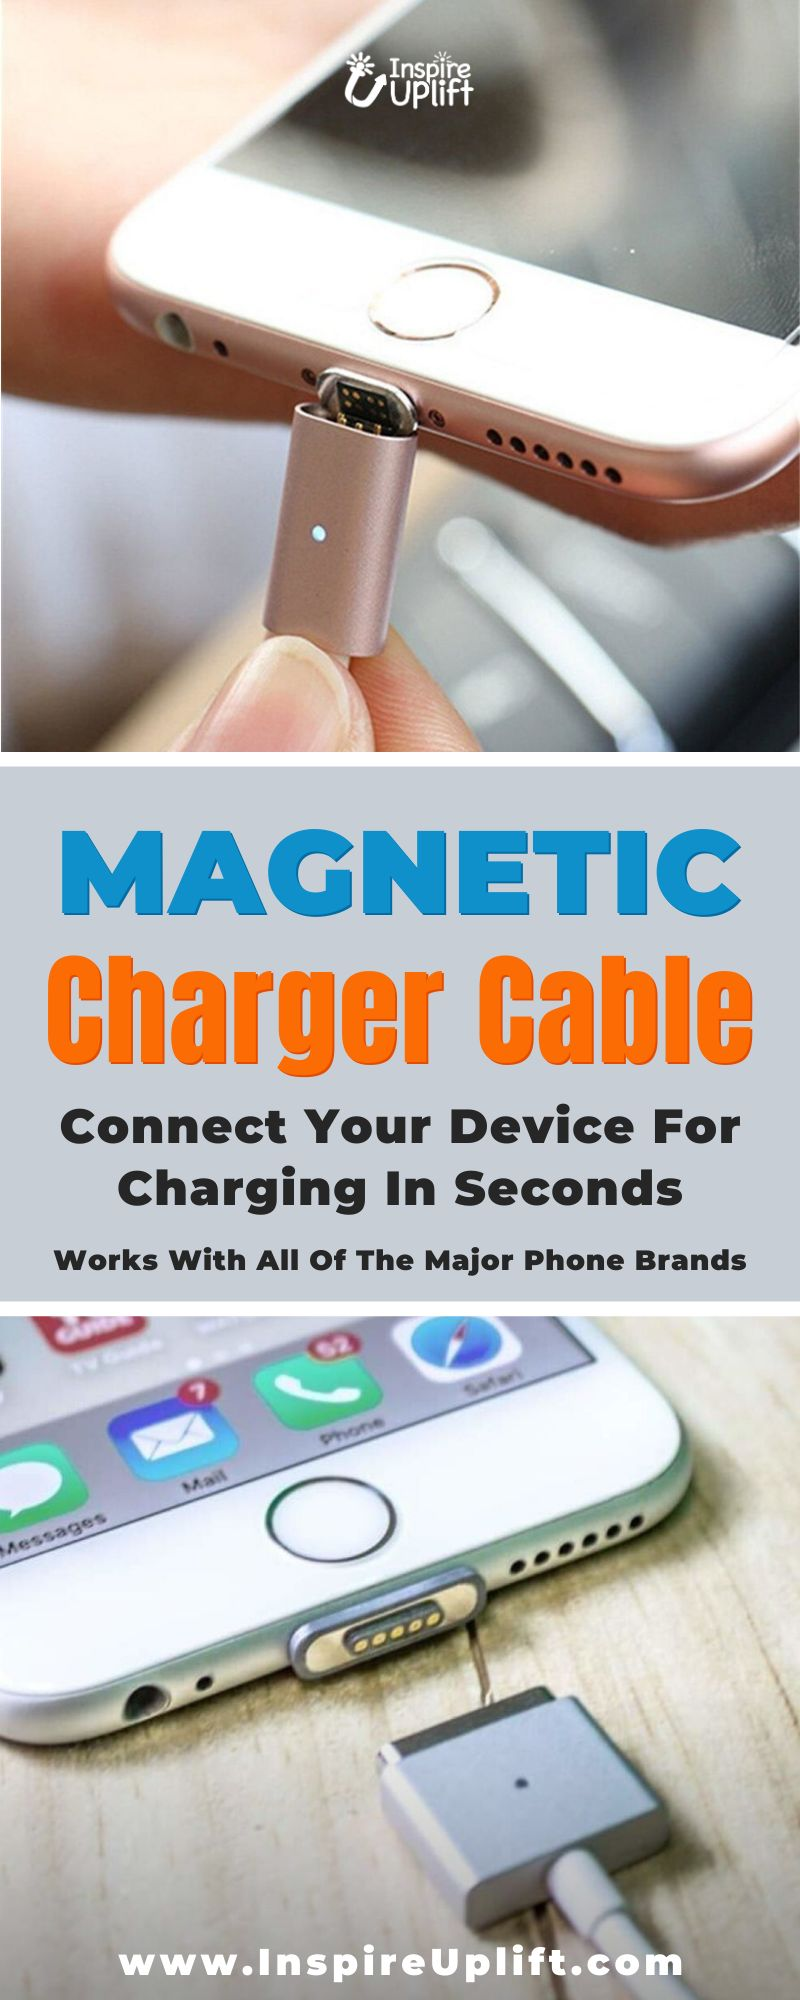 No more fumbling and fiddling around, trying to plug your phone in. With this nifty, little, magnetized gadget you can connect your device for charging in seconds!  It's a well known fact that smartphones play a very vital role in our daily lives and with them comes an almost unlimited number of accessories. Among the most popular of these accessories, are magnetic phone charging cables.